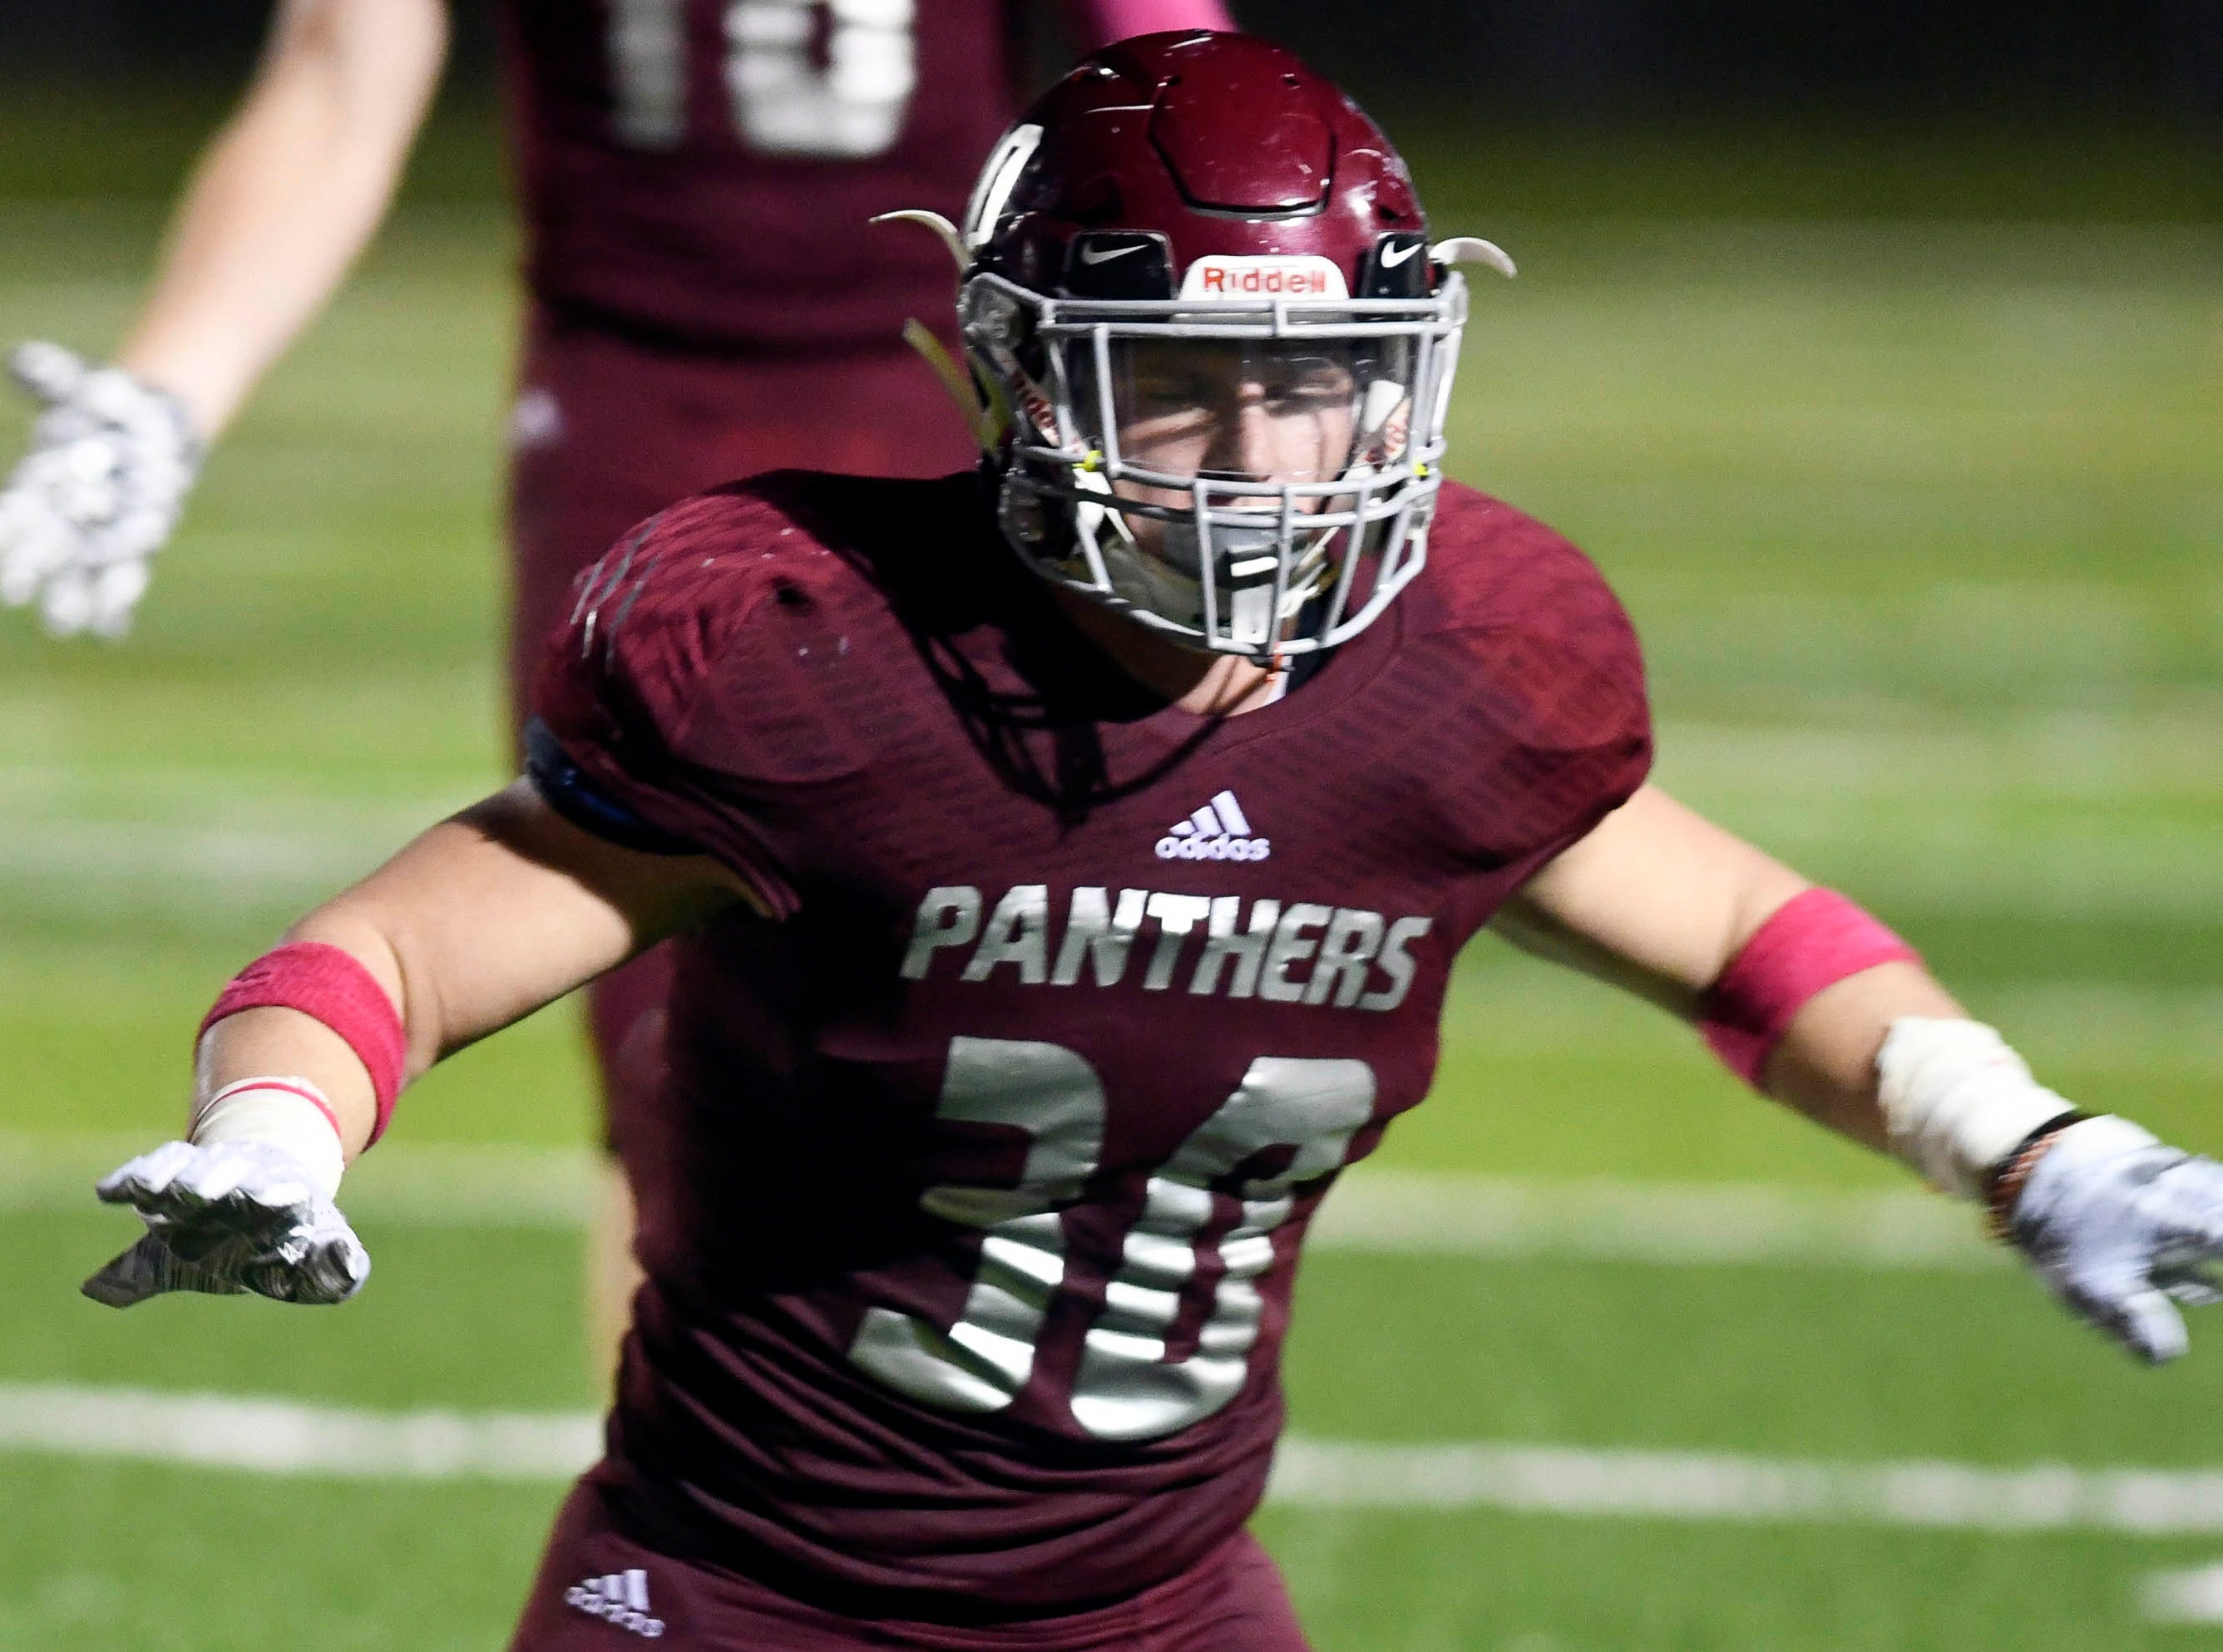 Evan Thompson of Florida Tech celebrates breaking up a pass play during Saturday's game at Panther Stadium